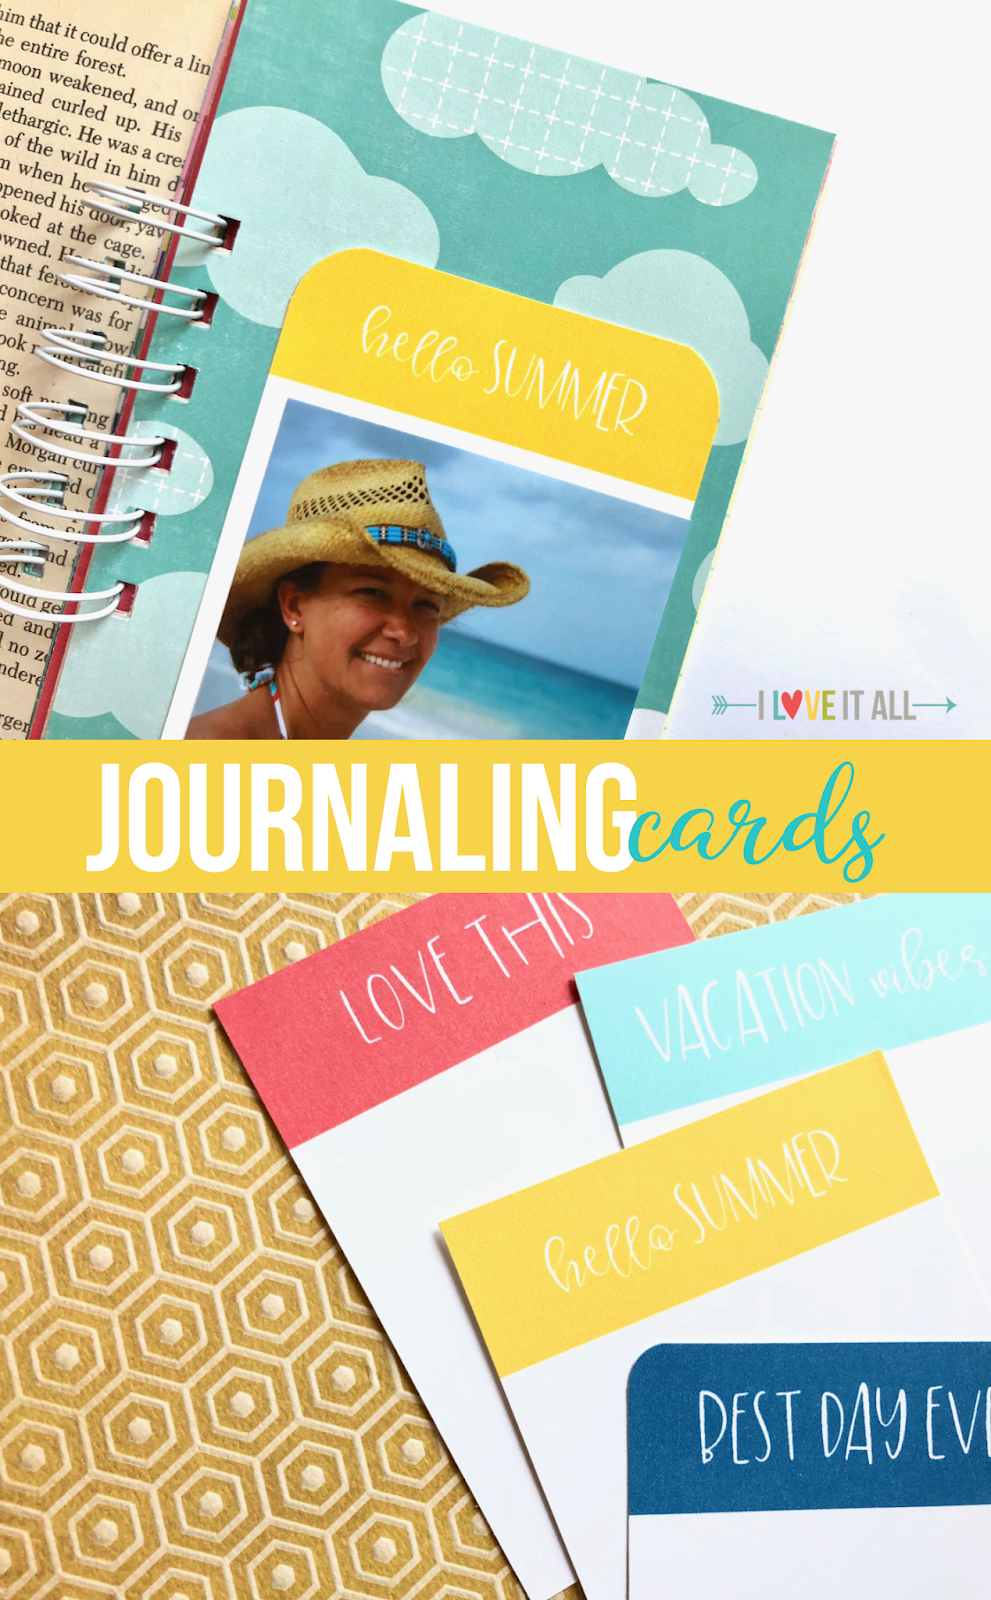 #hello summer #vacation vibes #best day ever #love this #journaling cards #printable #summer #summertime